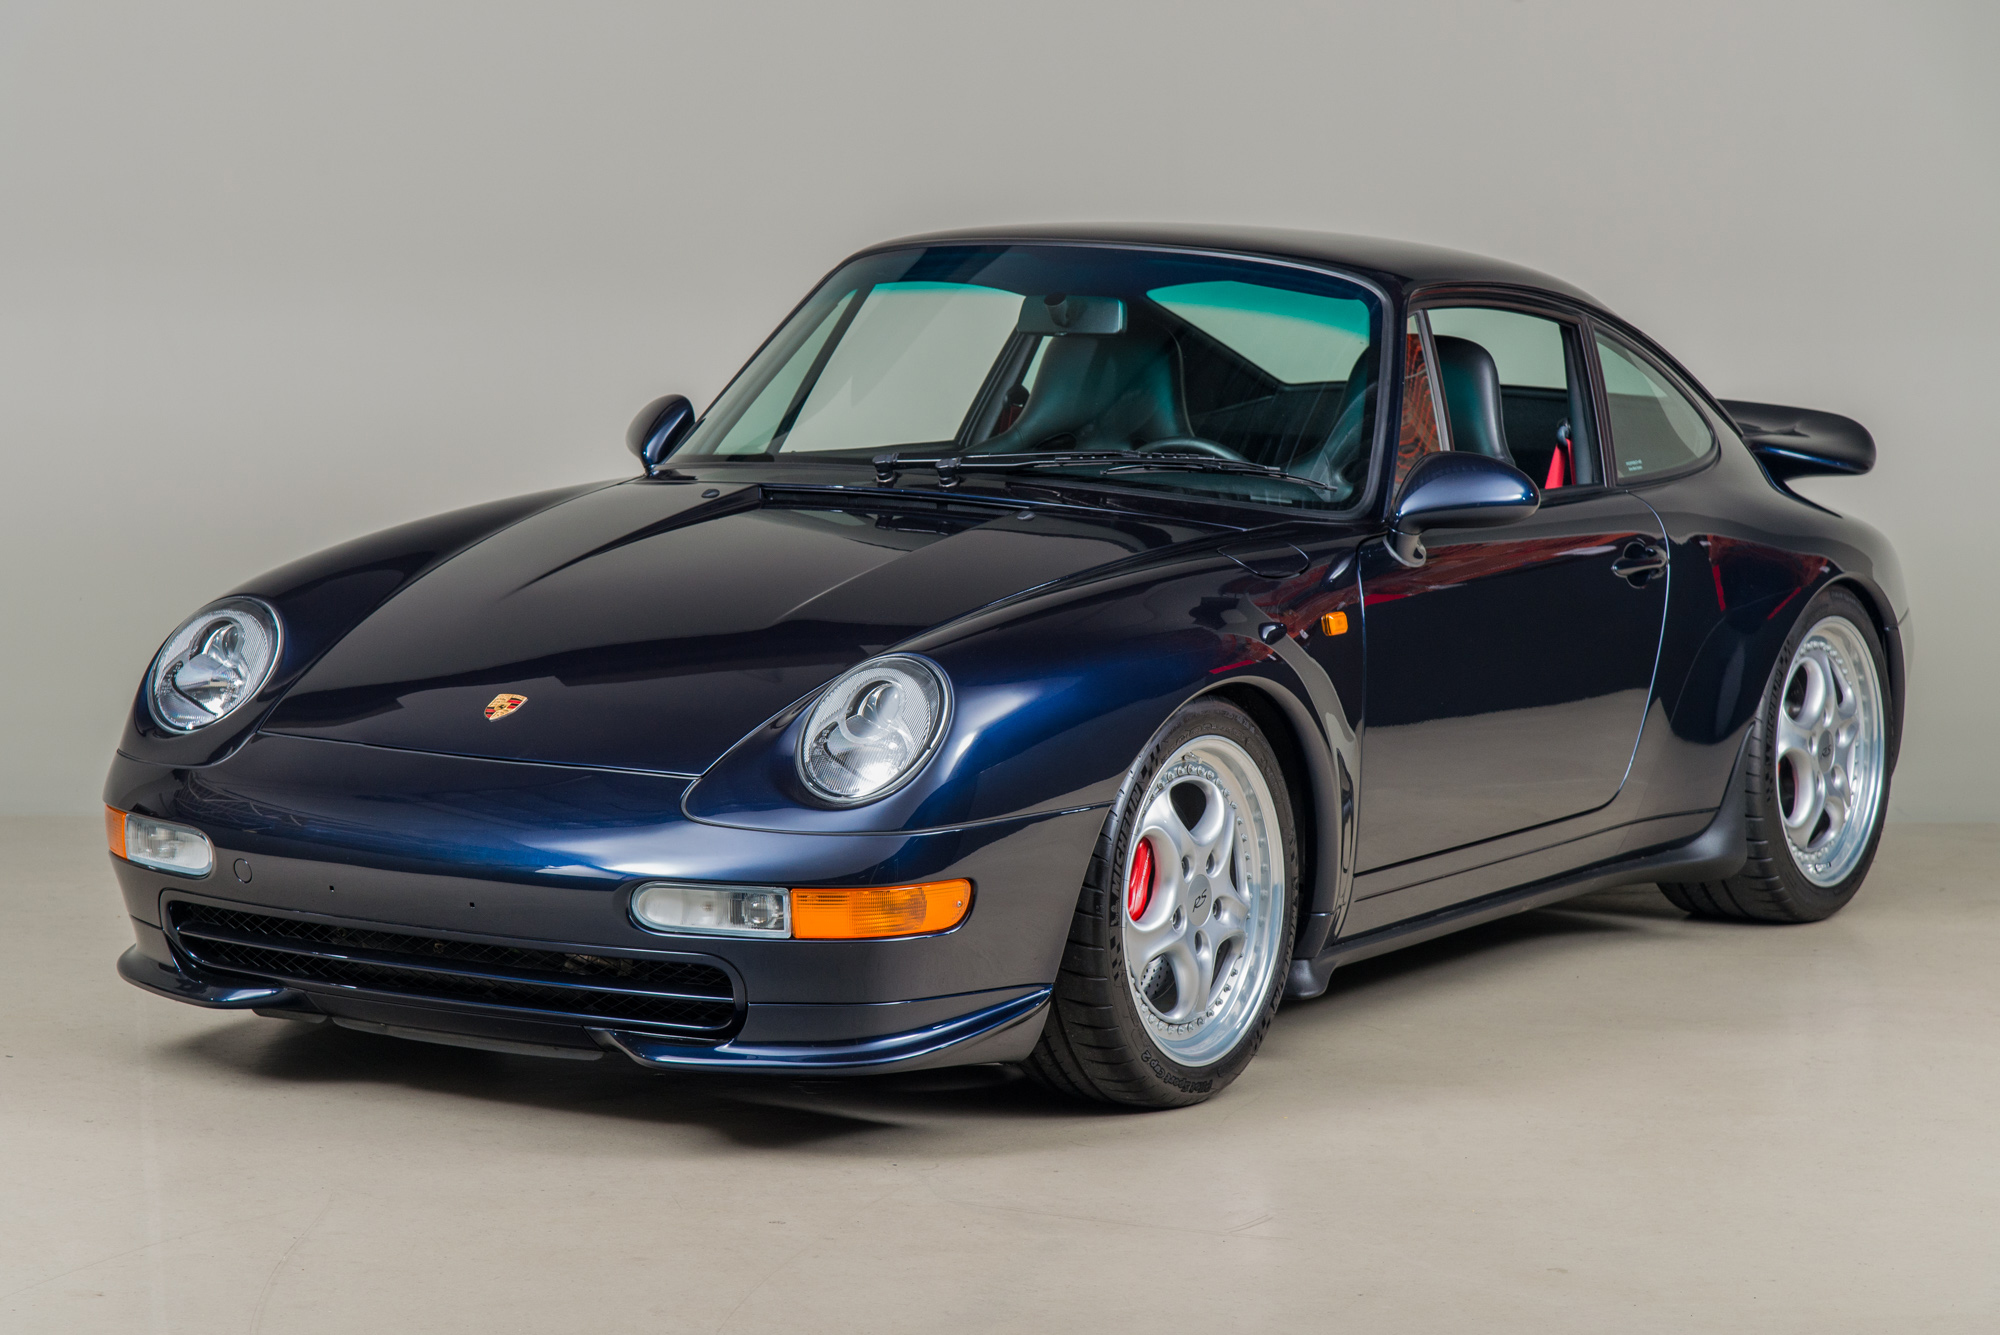 1996 Porsche 911 Carrera RS, MIDNIGHT BLUE, VIN WP0ZZZ99ZTS390067, MILEAGE 32444